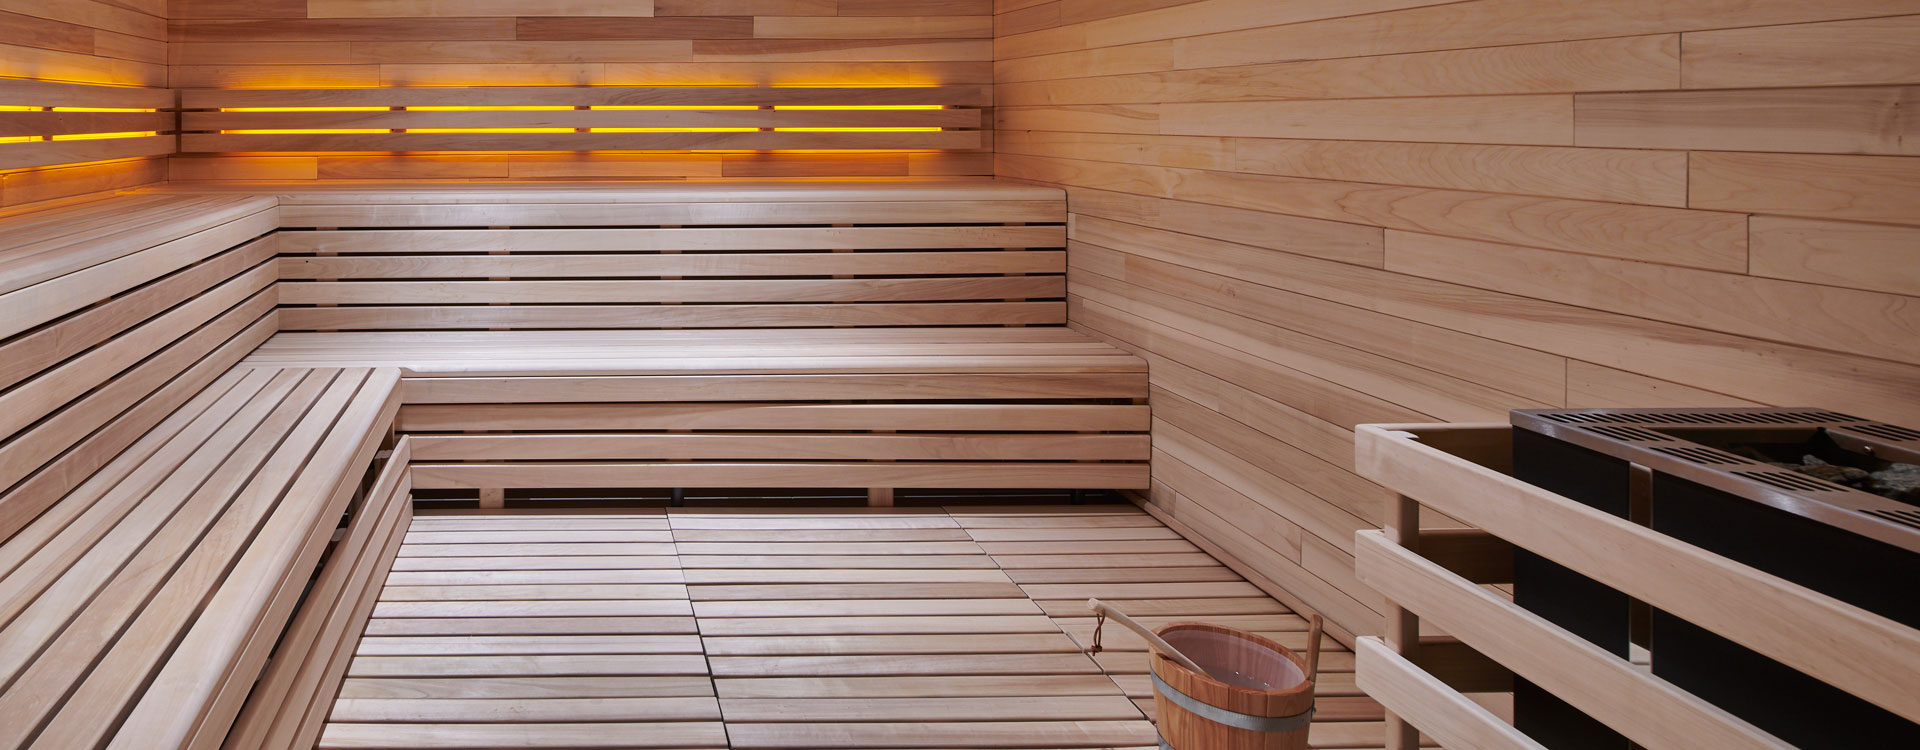 sauna - spa splendid dax